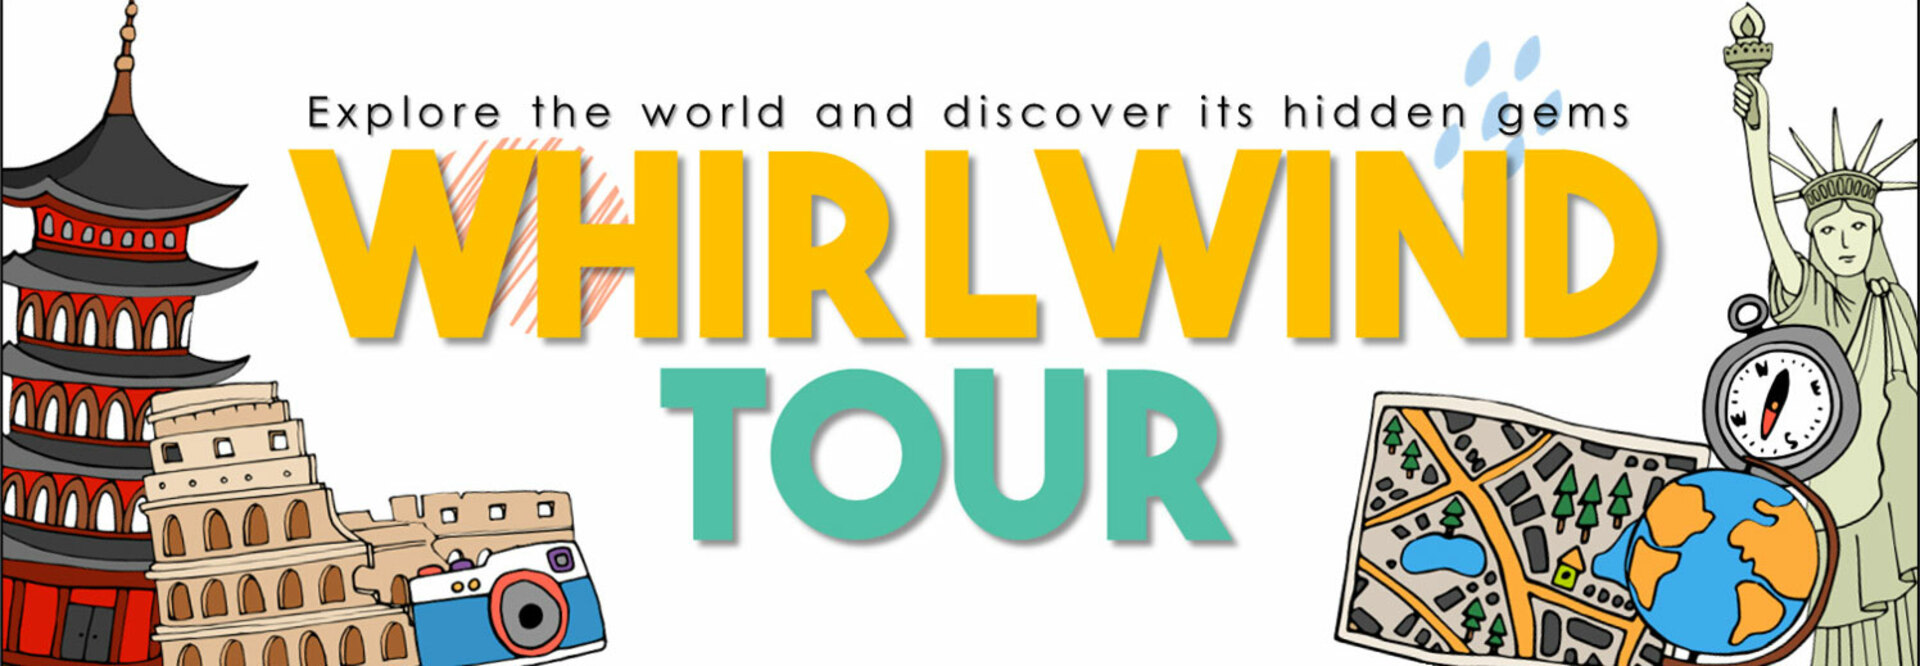 WHIRLWIND TOUR BANNER